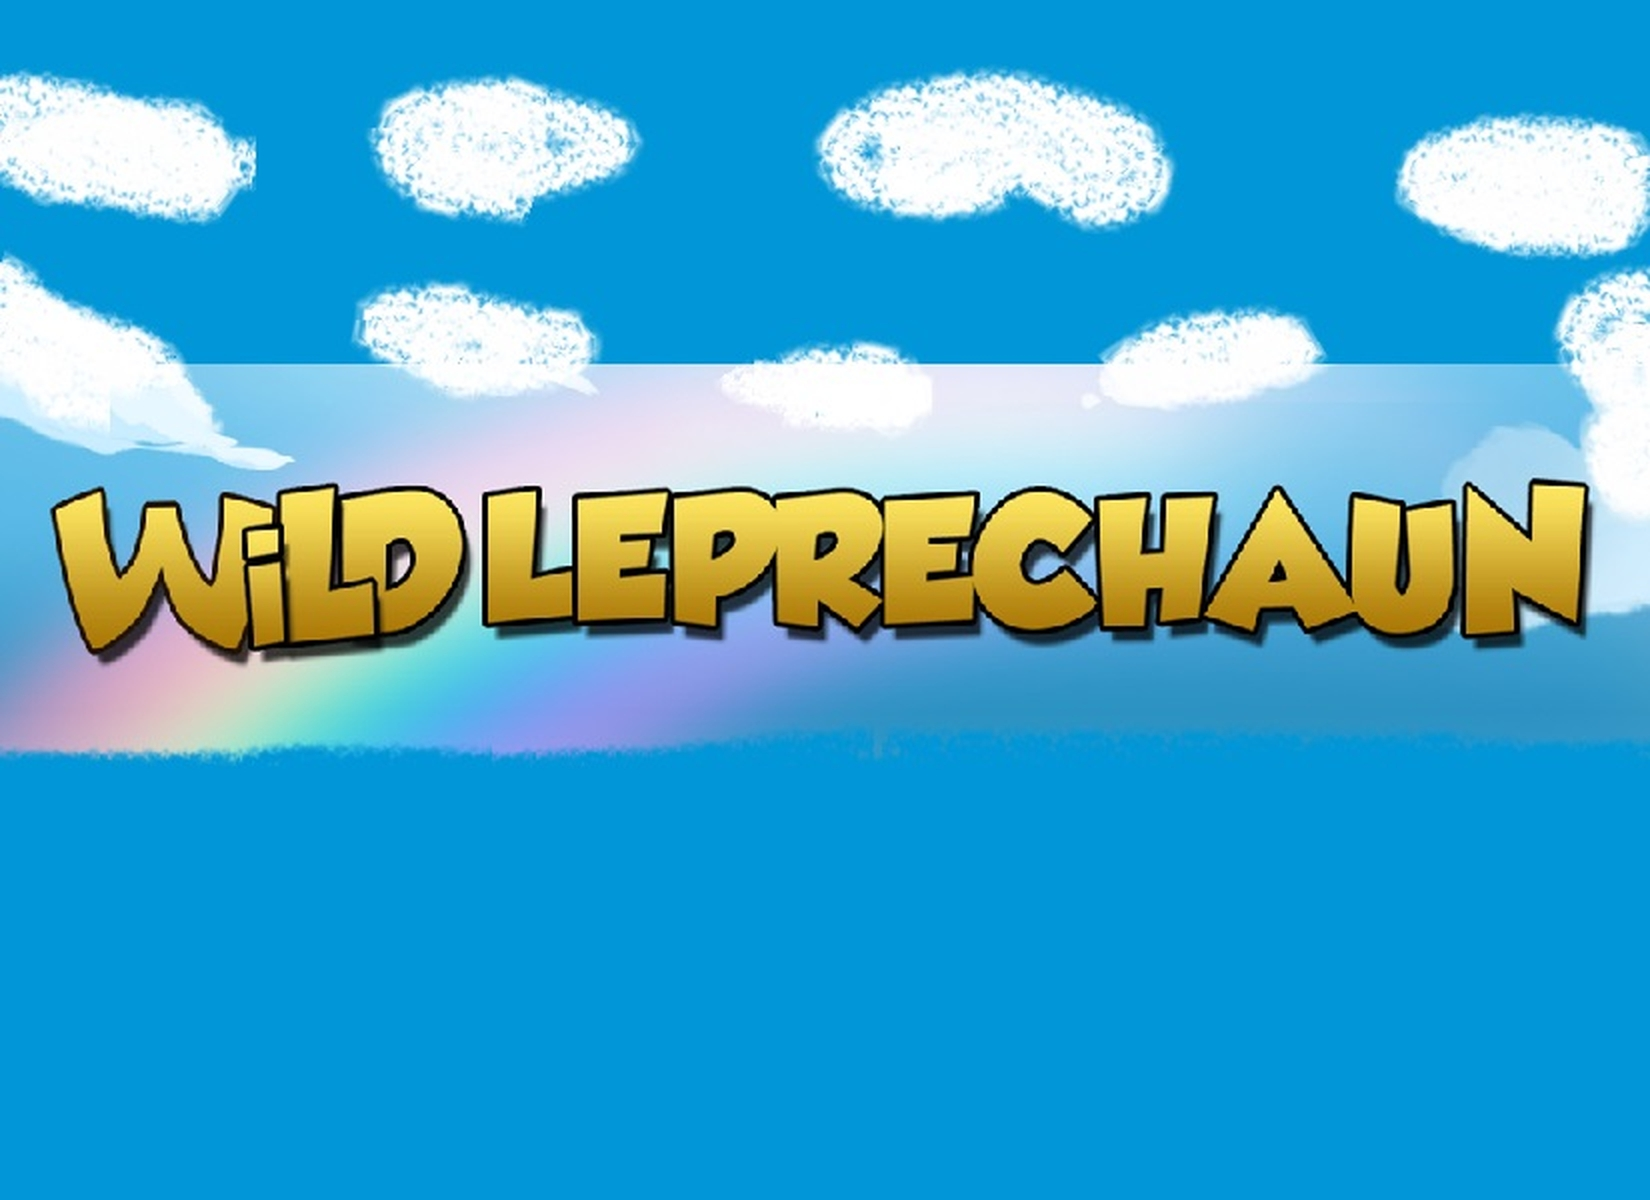 The Wild Leprechaun (PlayPearls) Online Slot Demo Game by PlayPearls